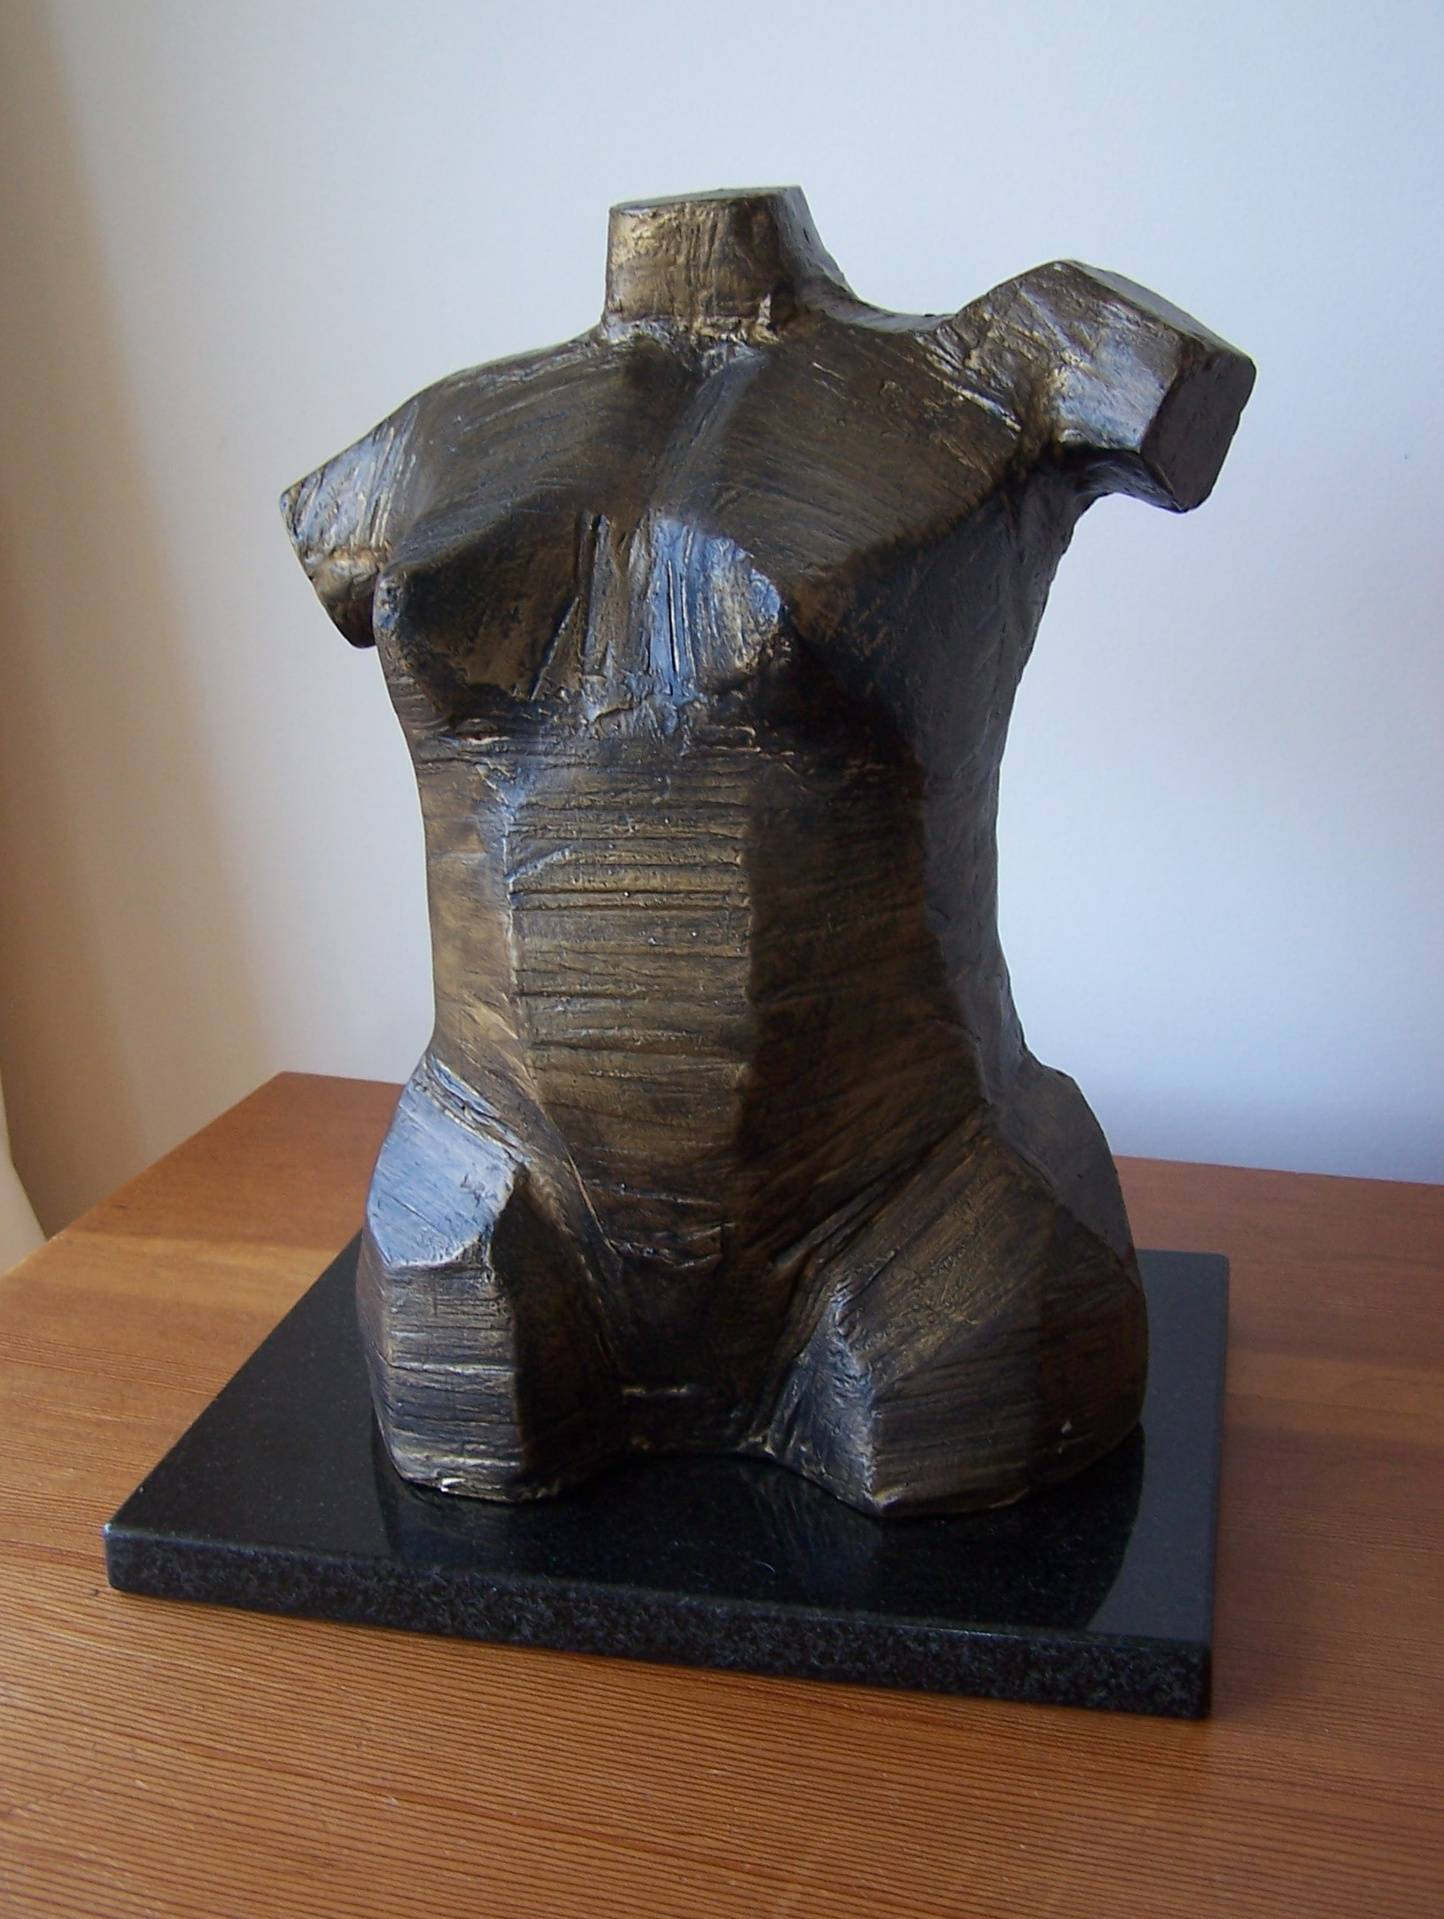 Sharp Woman :Medium : Reinforced resin and granite / Dimensions : 30cm high x 30cm long x10cm wide